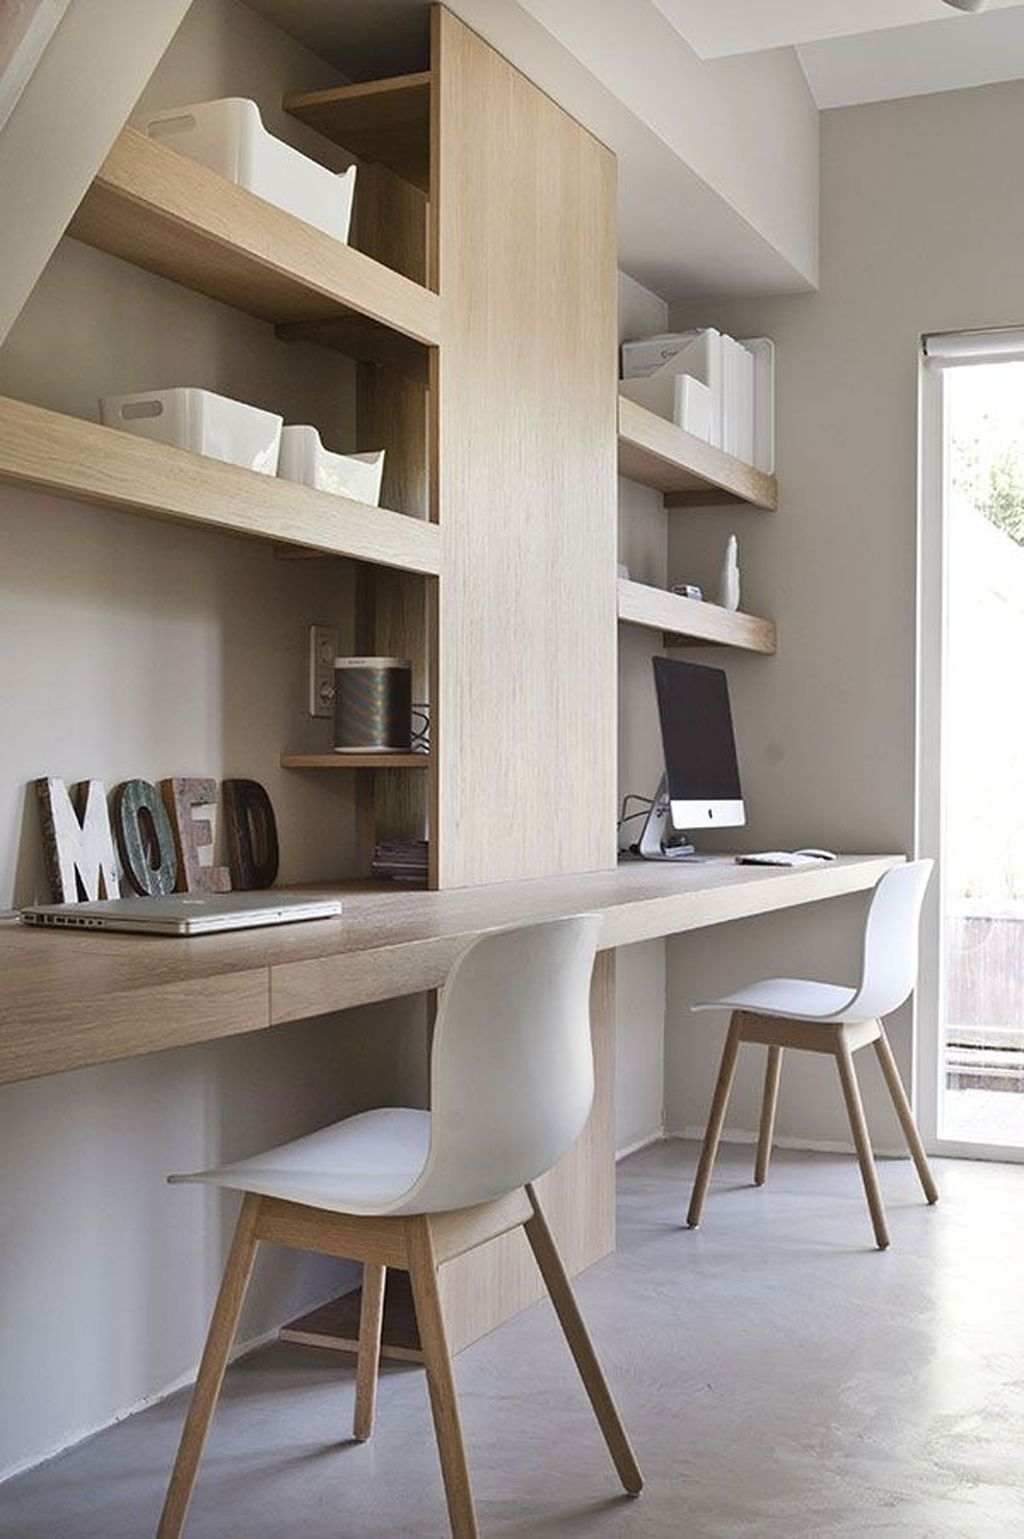 https://sweetyhomee.com/wp-content/uploads/2019/02/Modern-Home-Office-Idea-That-Easily-Implemented-14.jpg